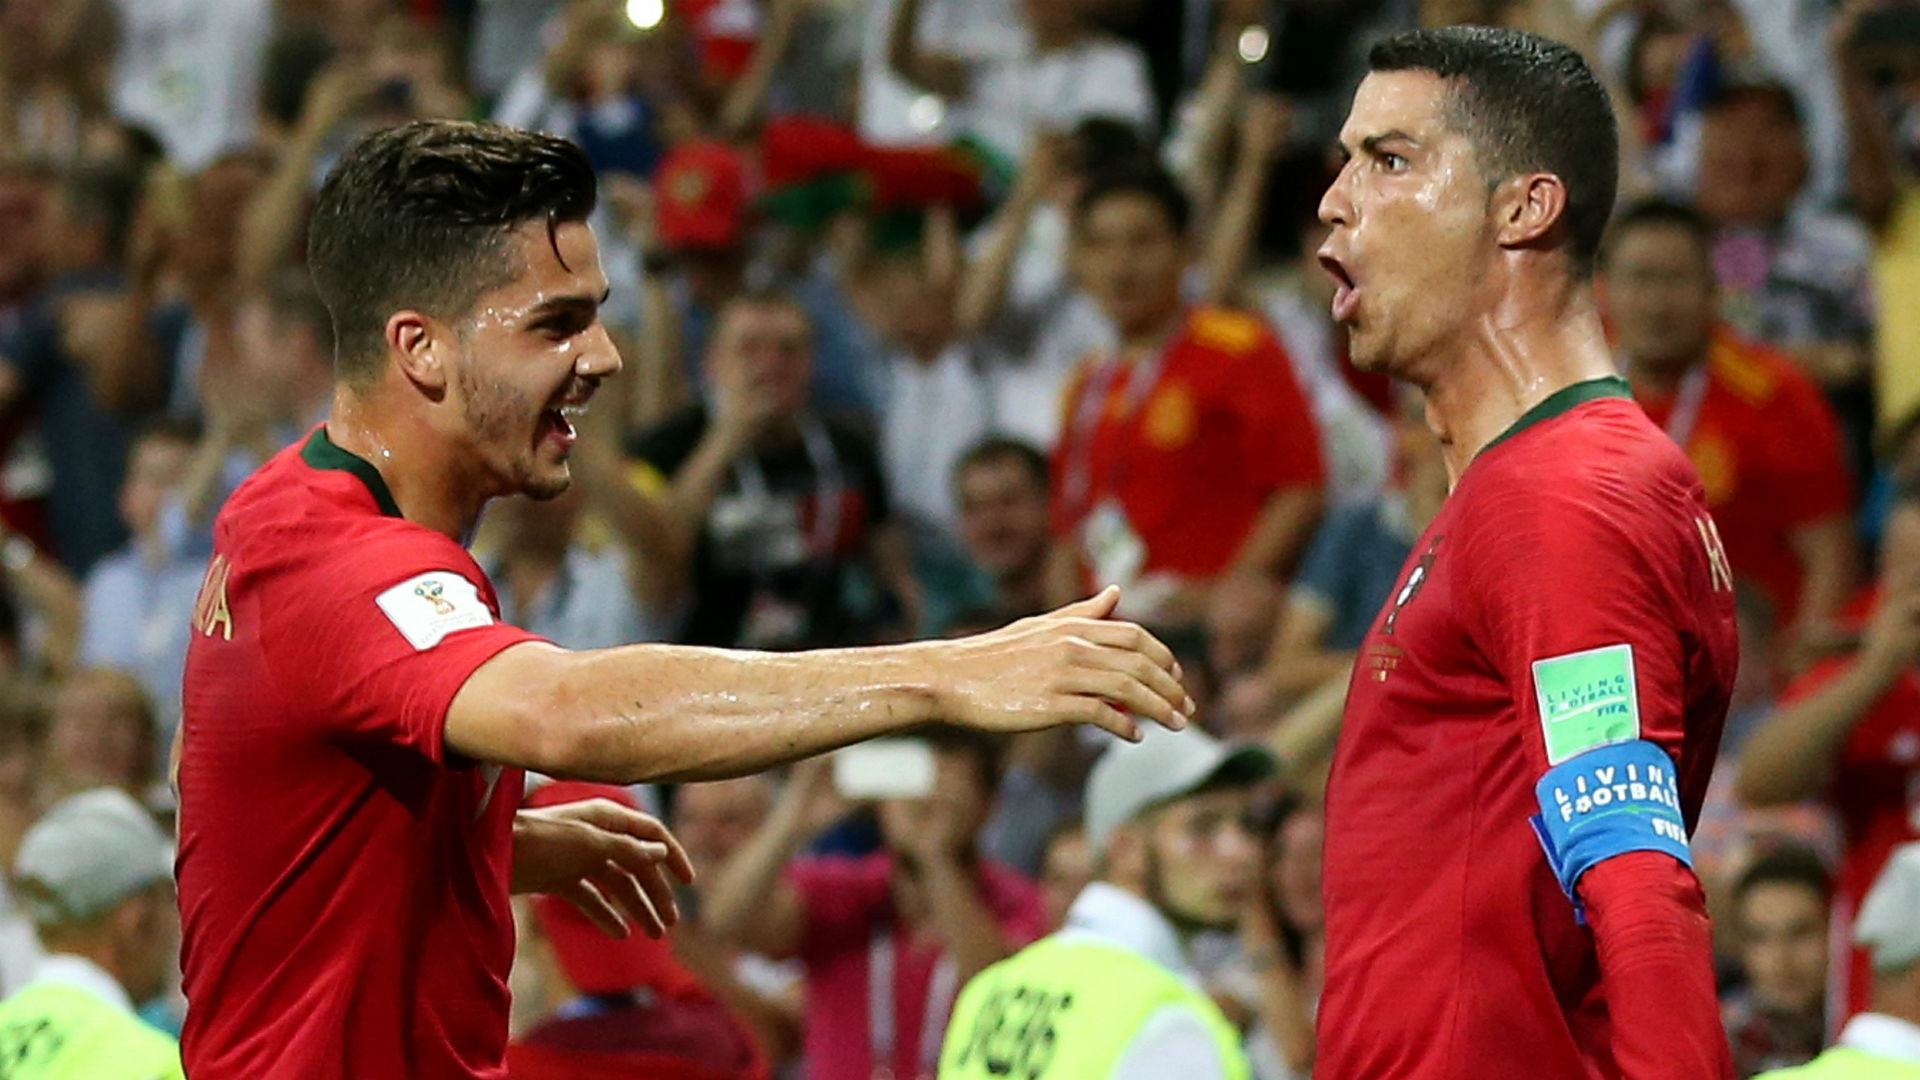 Portugal win 1-0, Morocco ousted